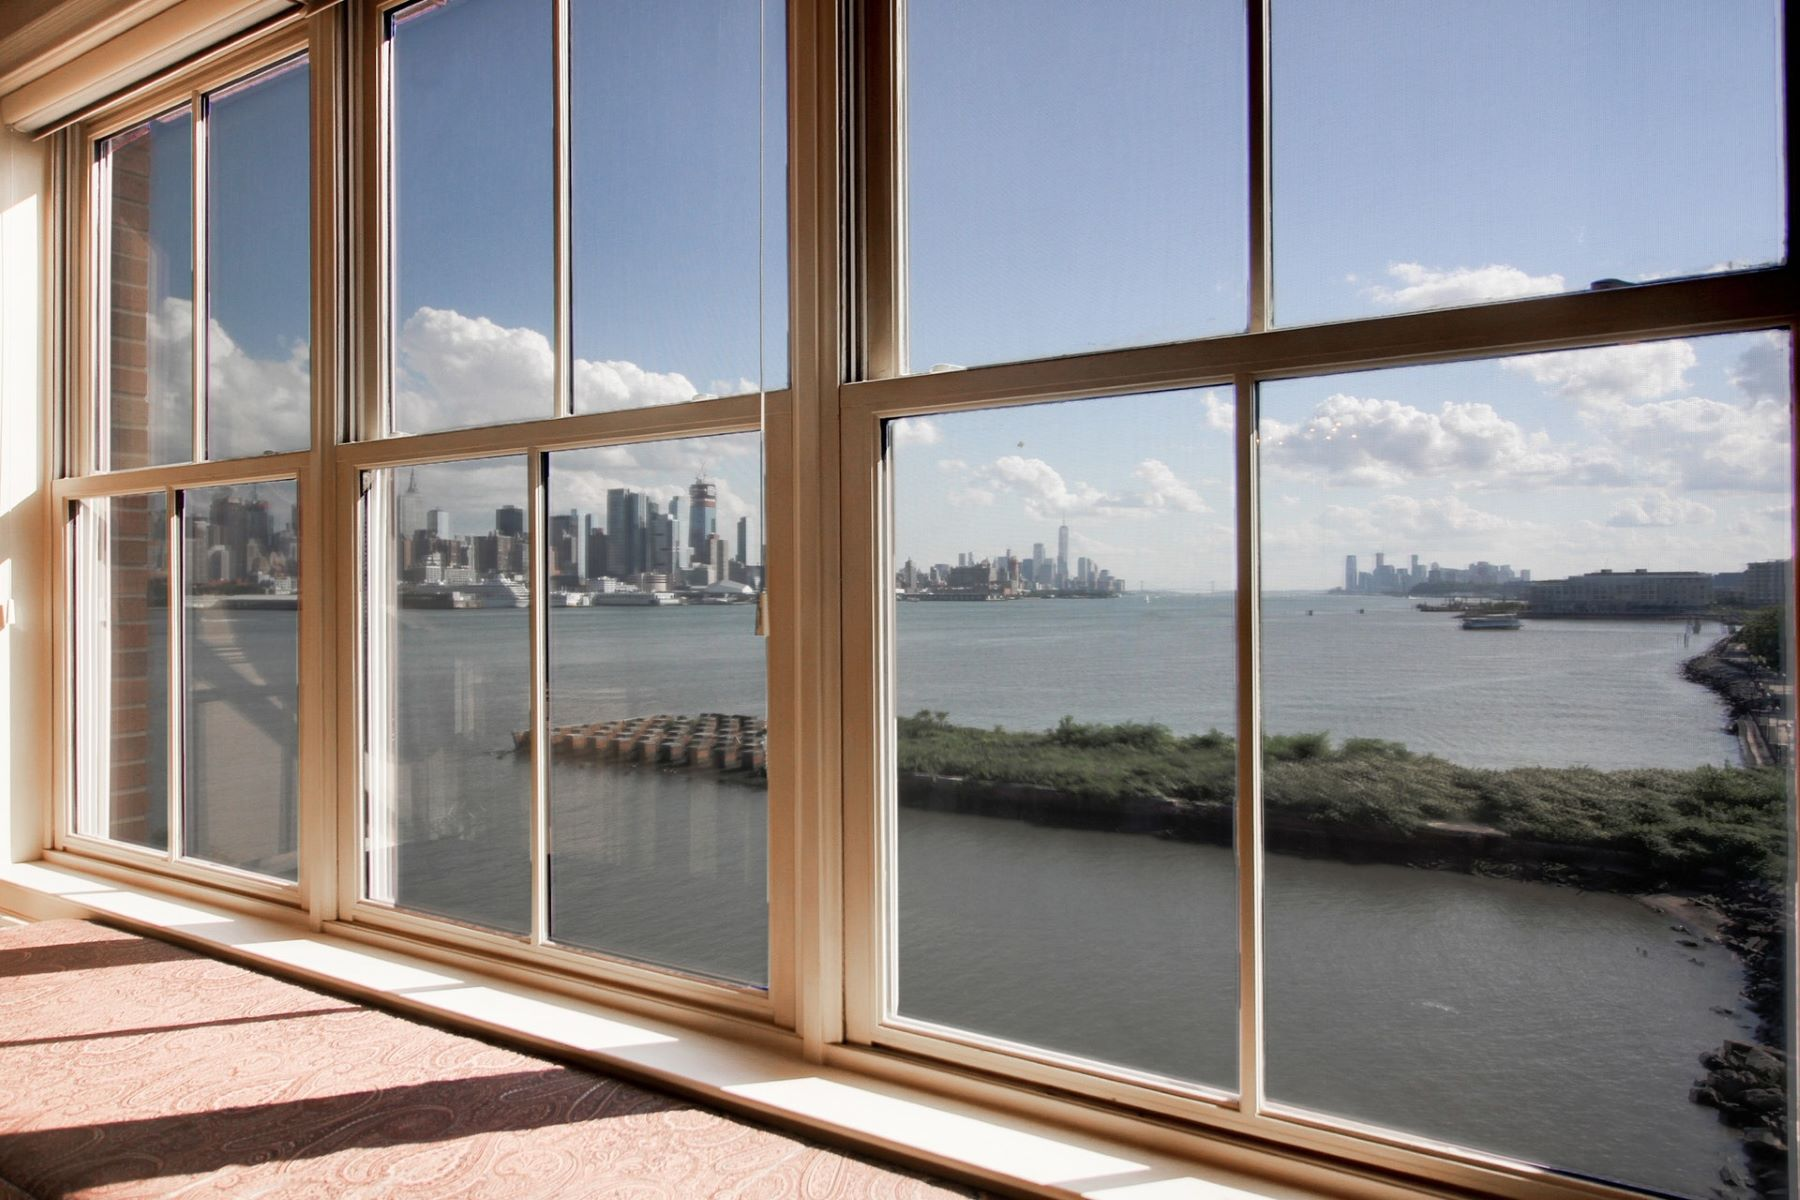 Condominiums for Sale at Welcome home to the Gold Coast premier waterfront community located in Grandview 22 Avenue At Port Imperial, Unit 403 West New York, New Jersey 07093 United States